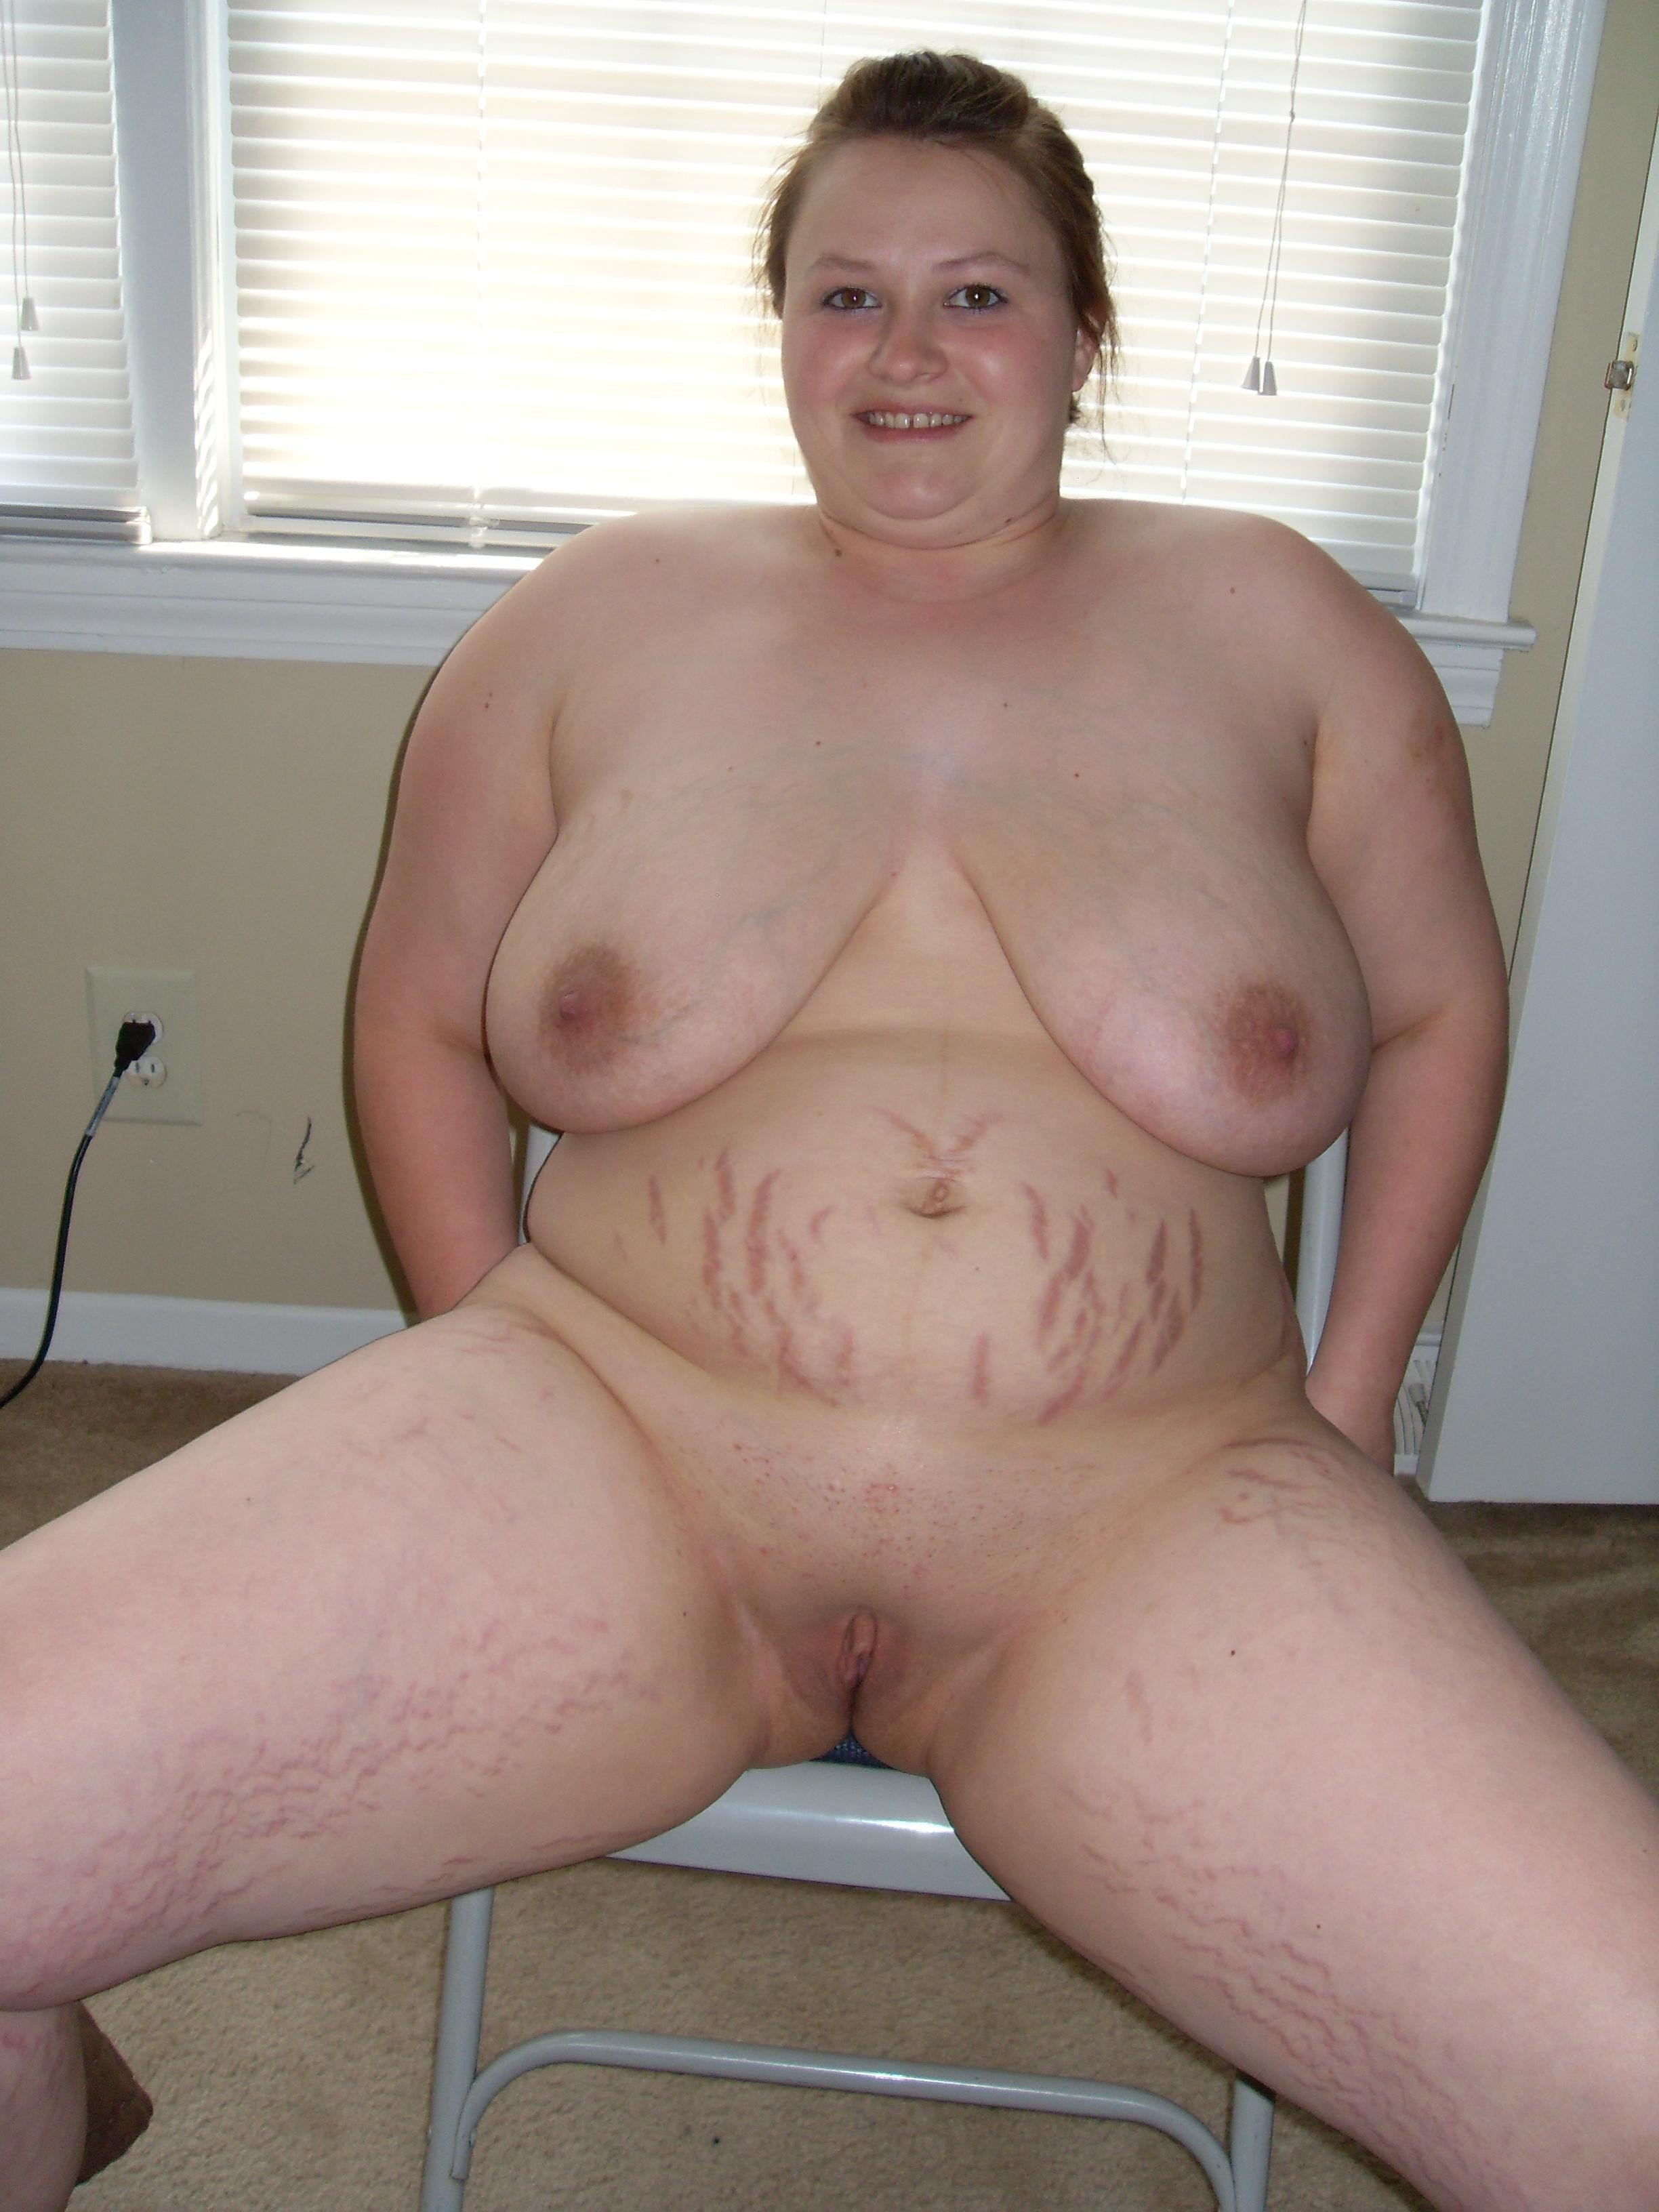 ugly-woman-naked-tumblr